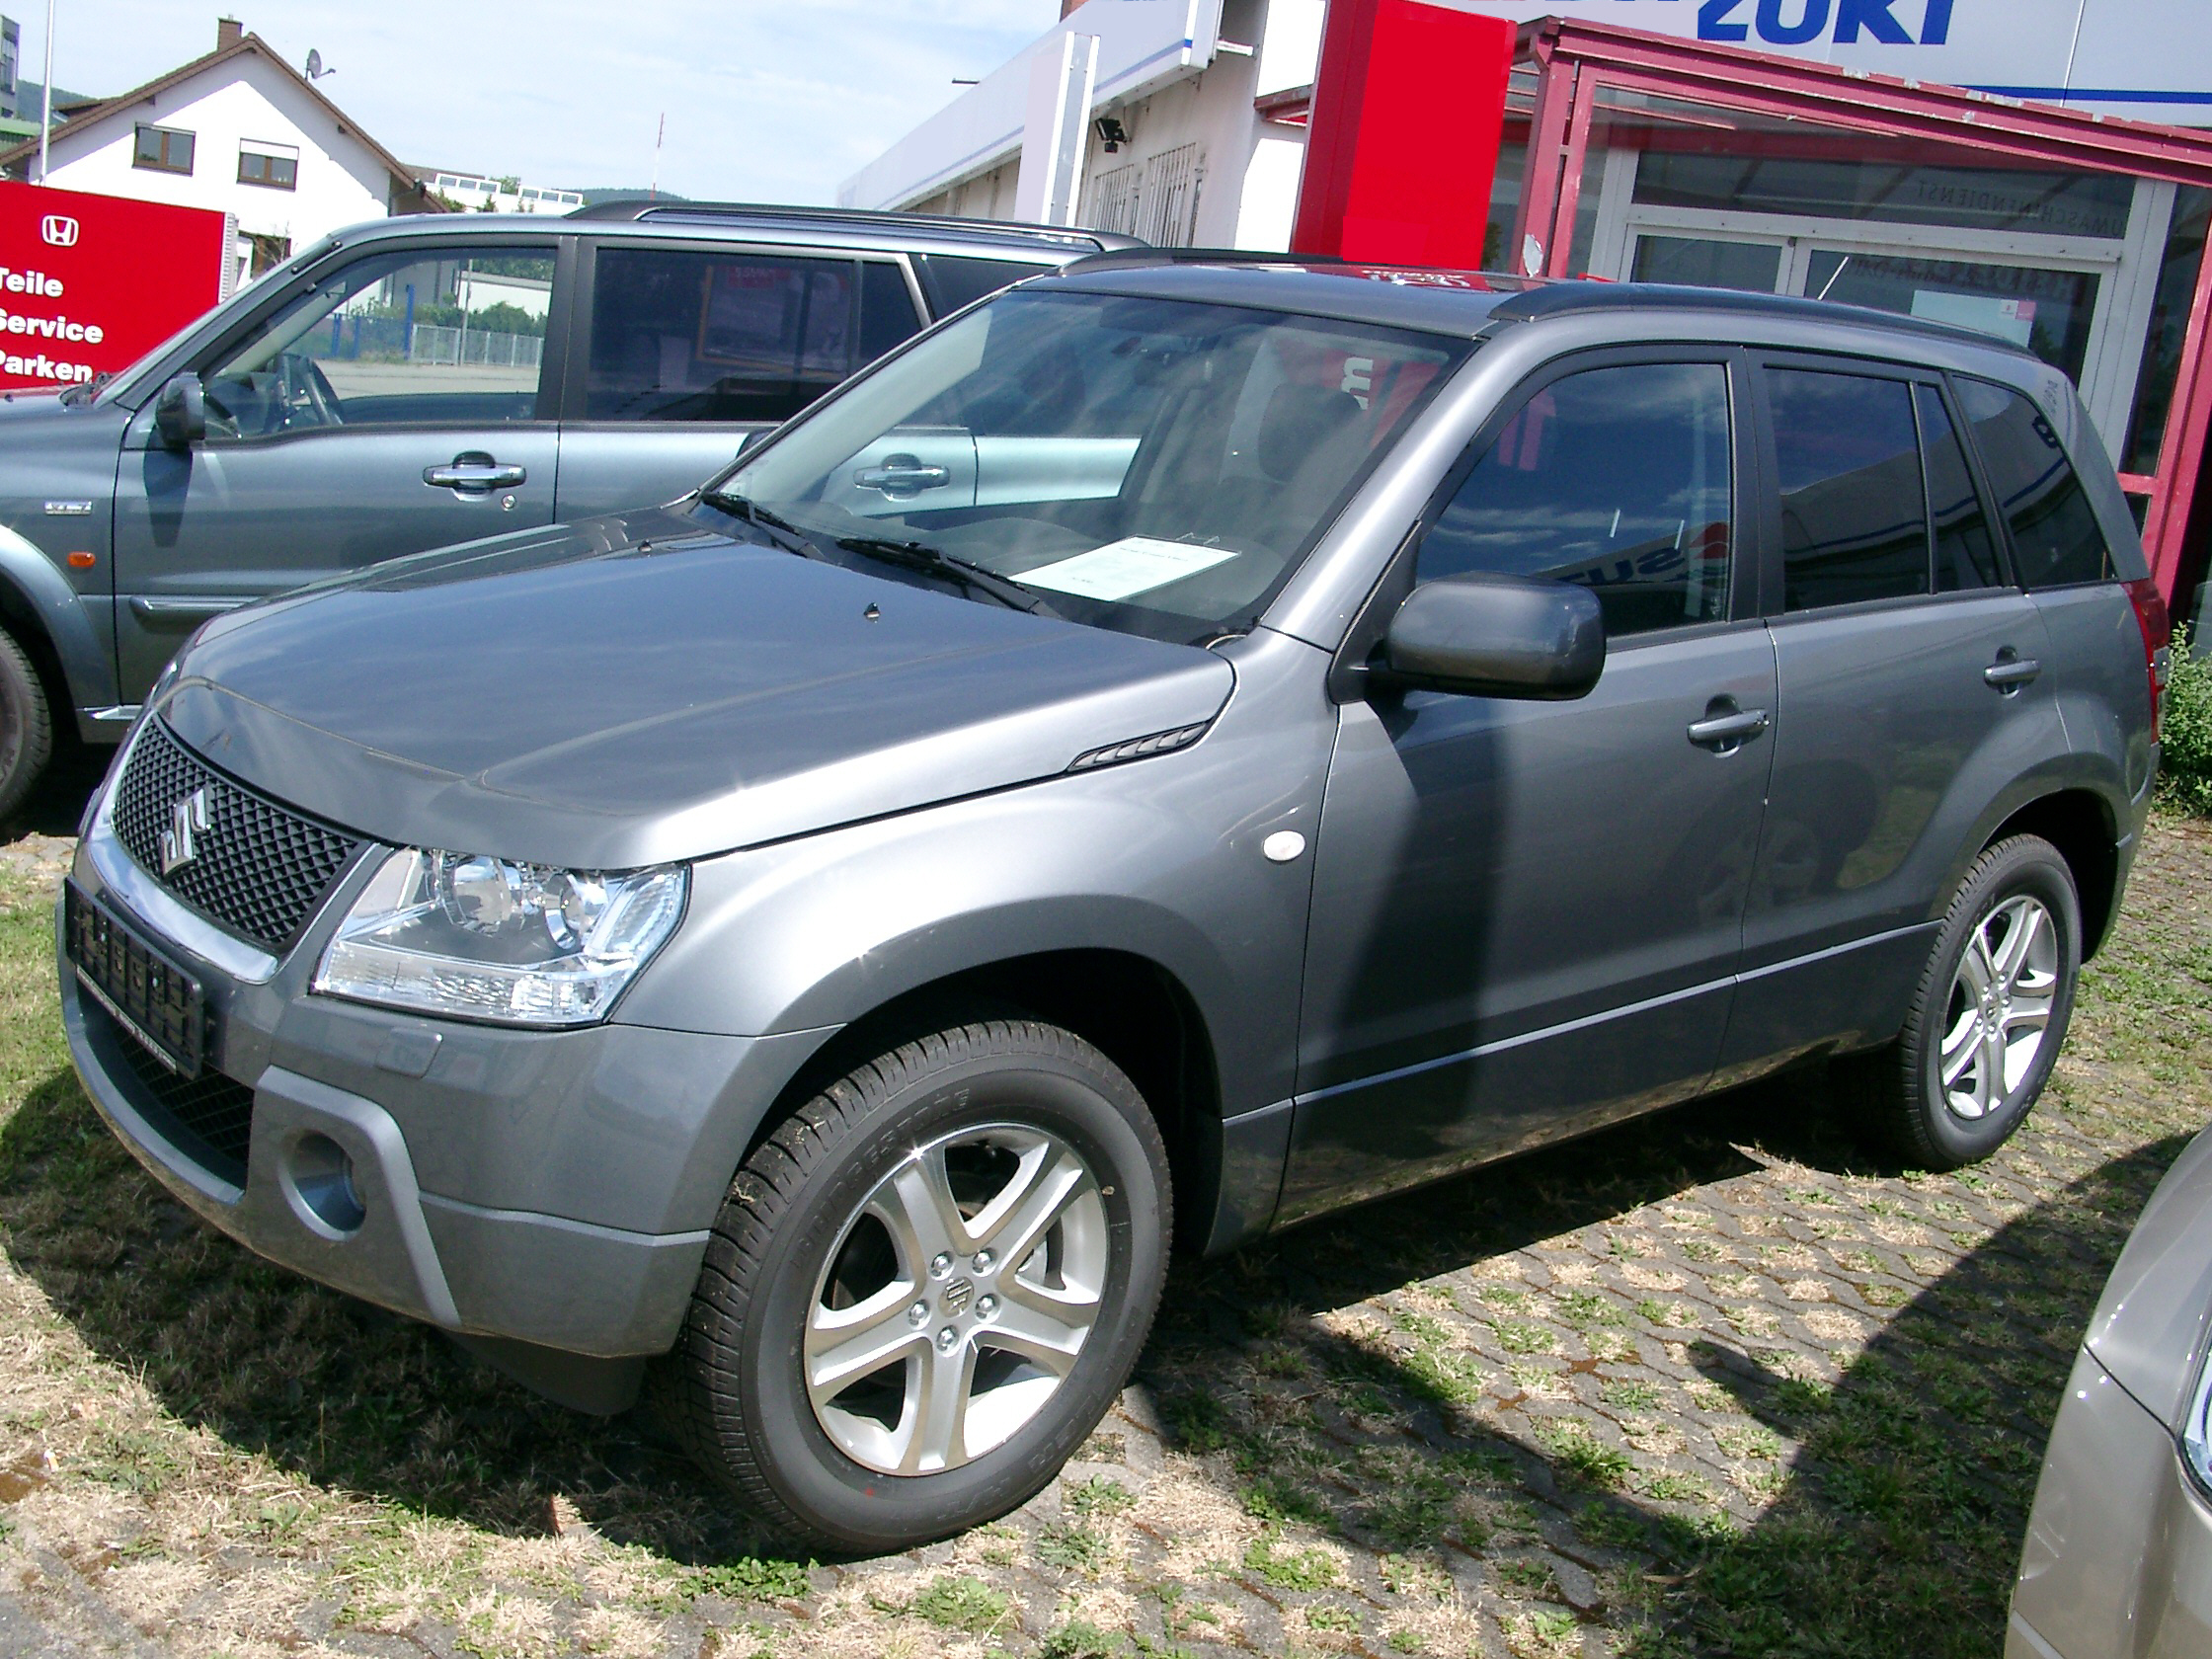 2007 suzuki grand vitara information and photos momentcar. Black Bedroom Furniture Sets. Home Design Ideas